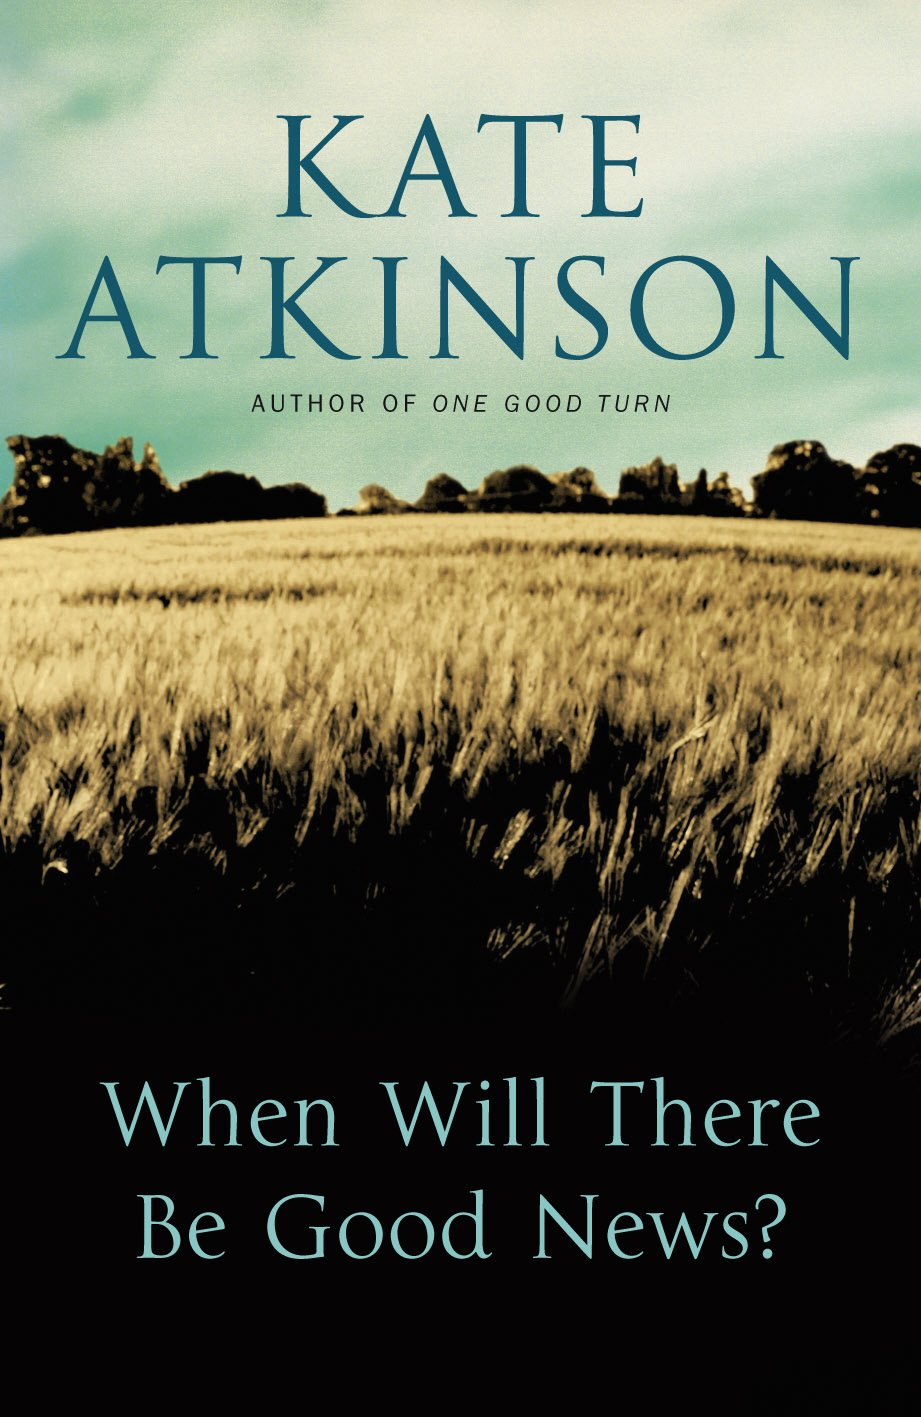 When will there be good news kate atkinson 9780385608015 amazon com books